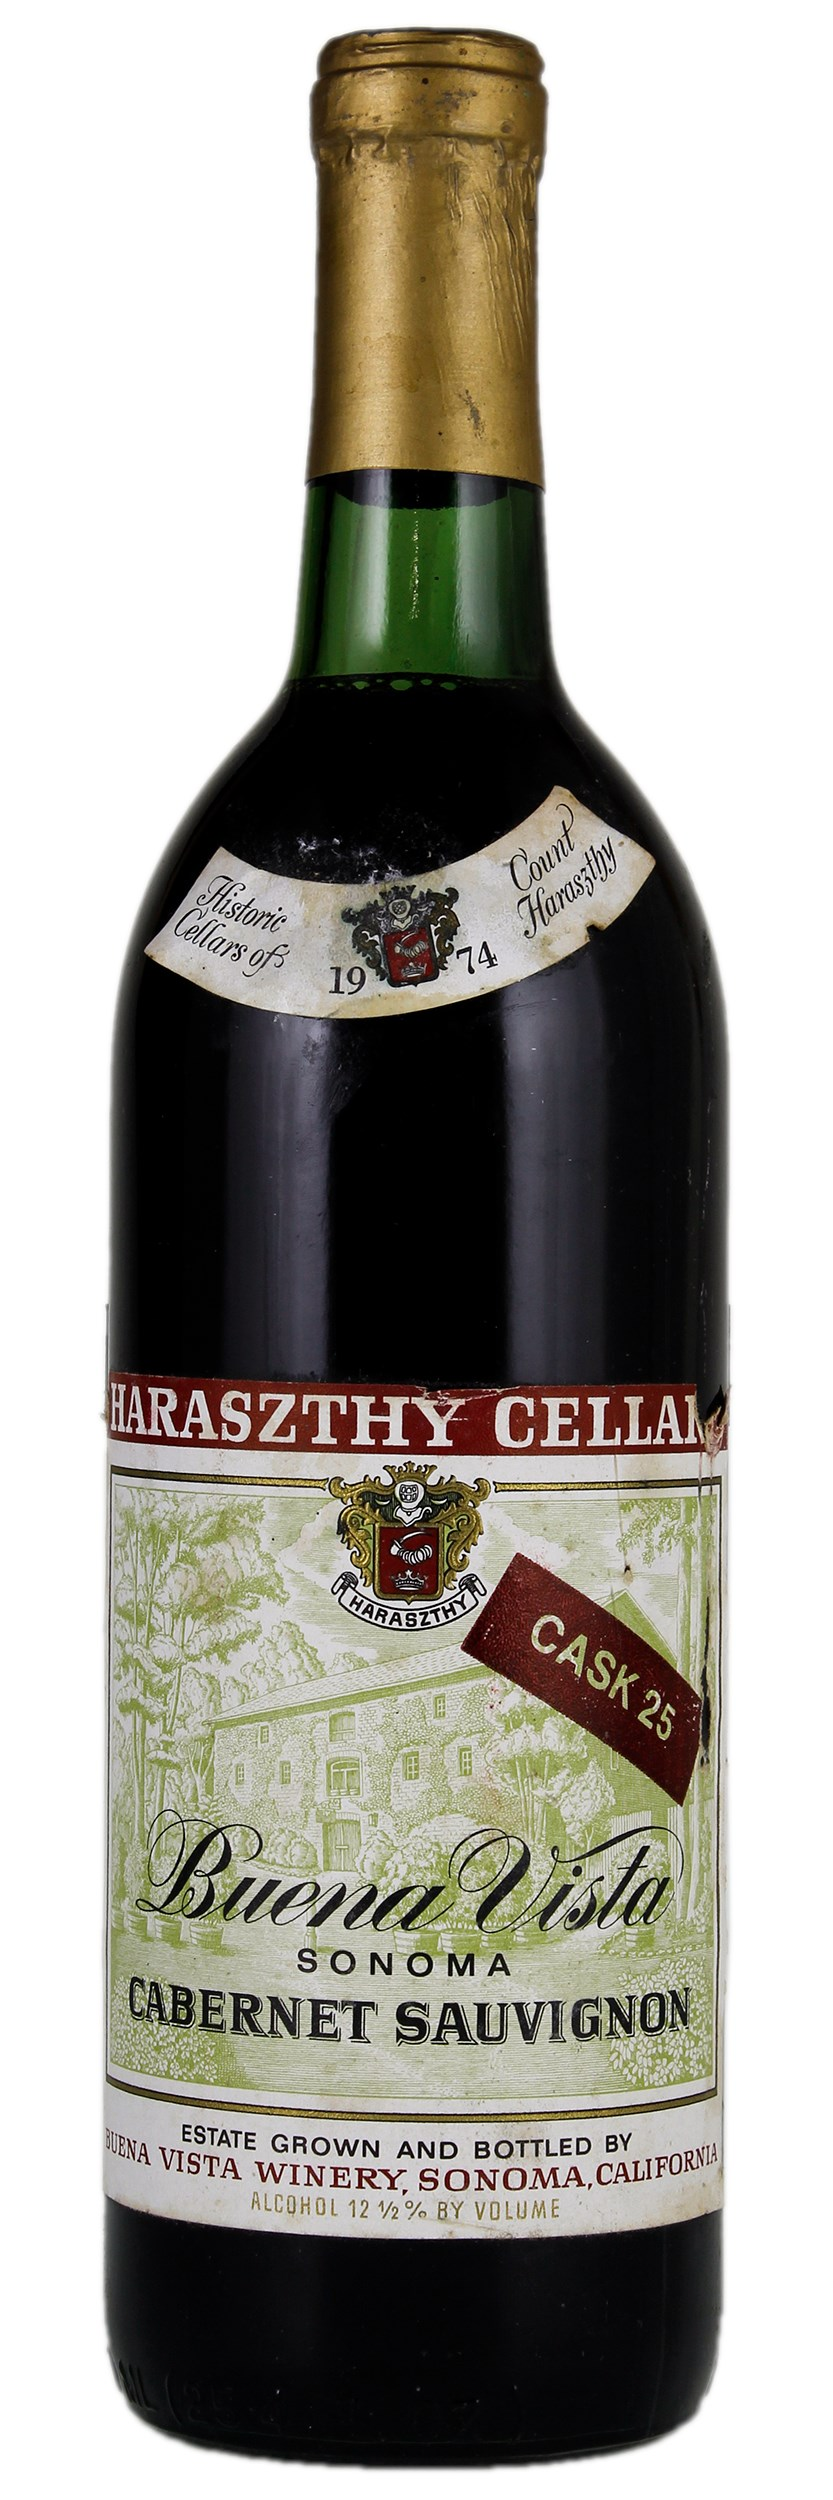 /BuyWine/Item/Auction/139052/1974-Buena-Vista-Haraszthy-Cellars -Cabernet-Sauvig~  sc 1 st  WineBid : haraszthy family cellars  - Aeropaca.Org